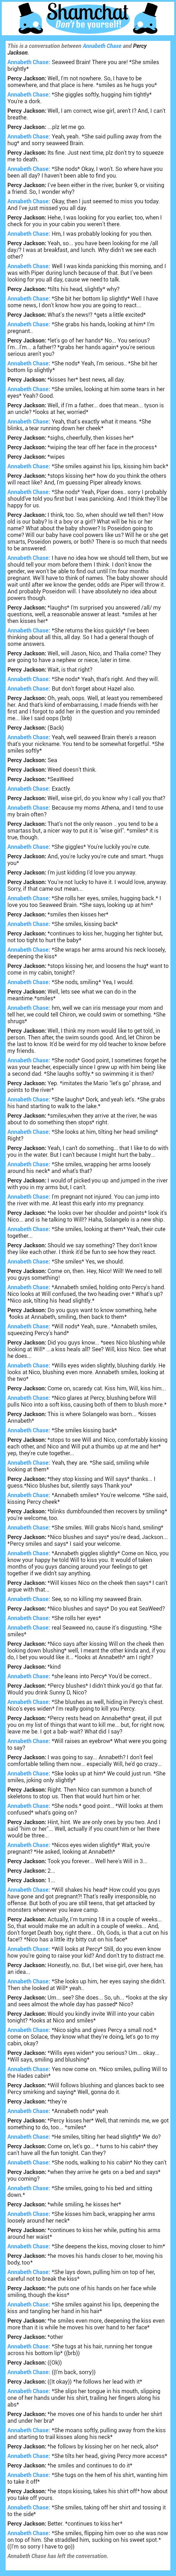 A conversation between Percy Jackson and Annabeth Chase